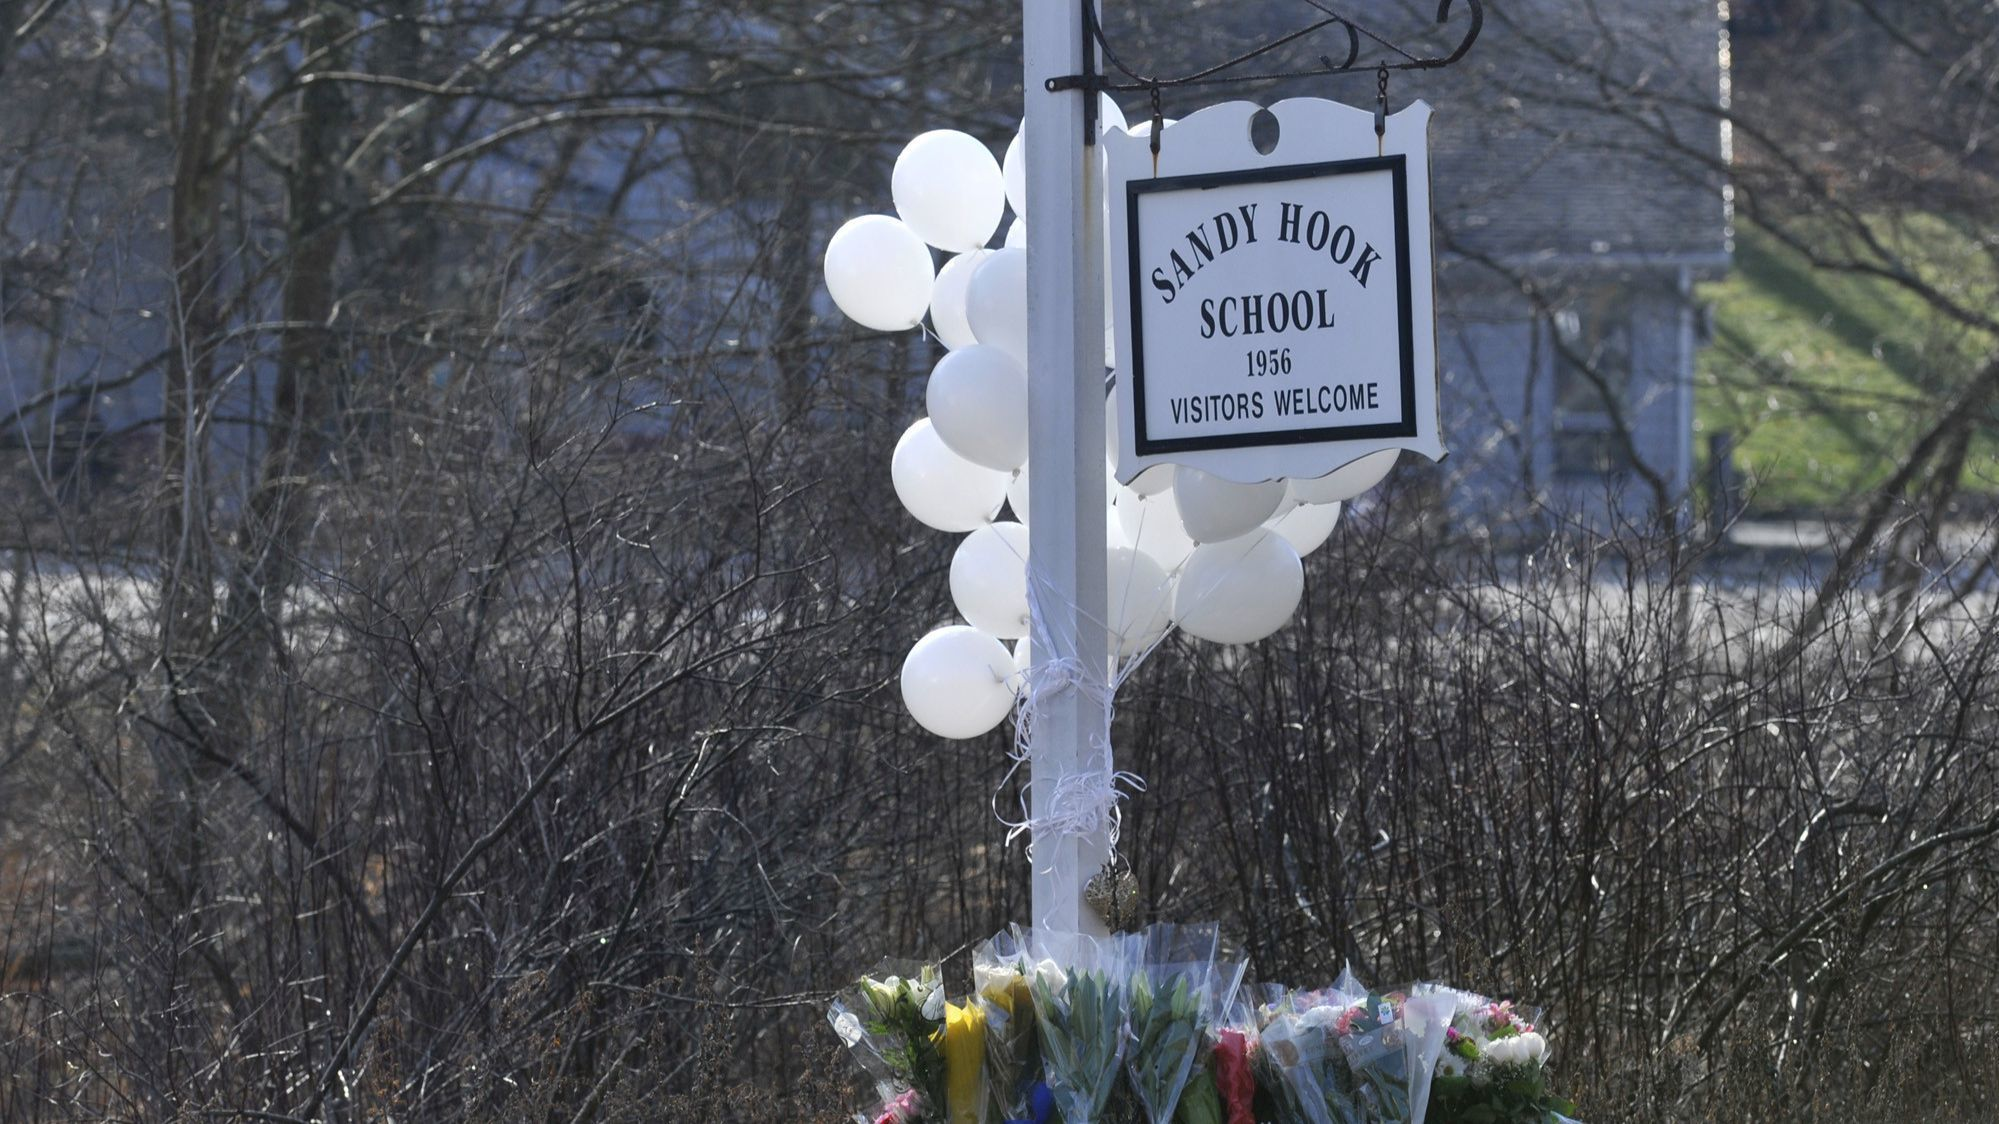 Newtown Educators Defend Dealings With Adam Lanza In First Major Response Since Sandy Hook School Massacre | Hartford Courant